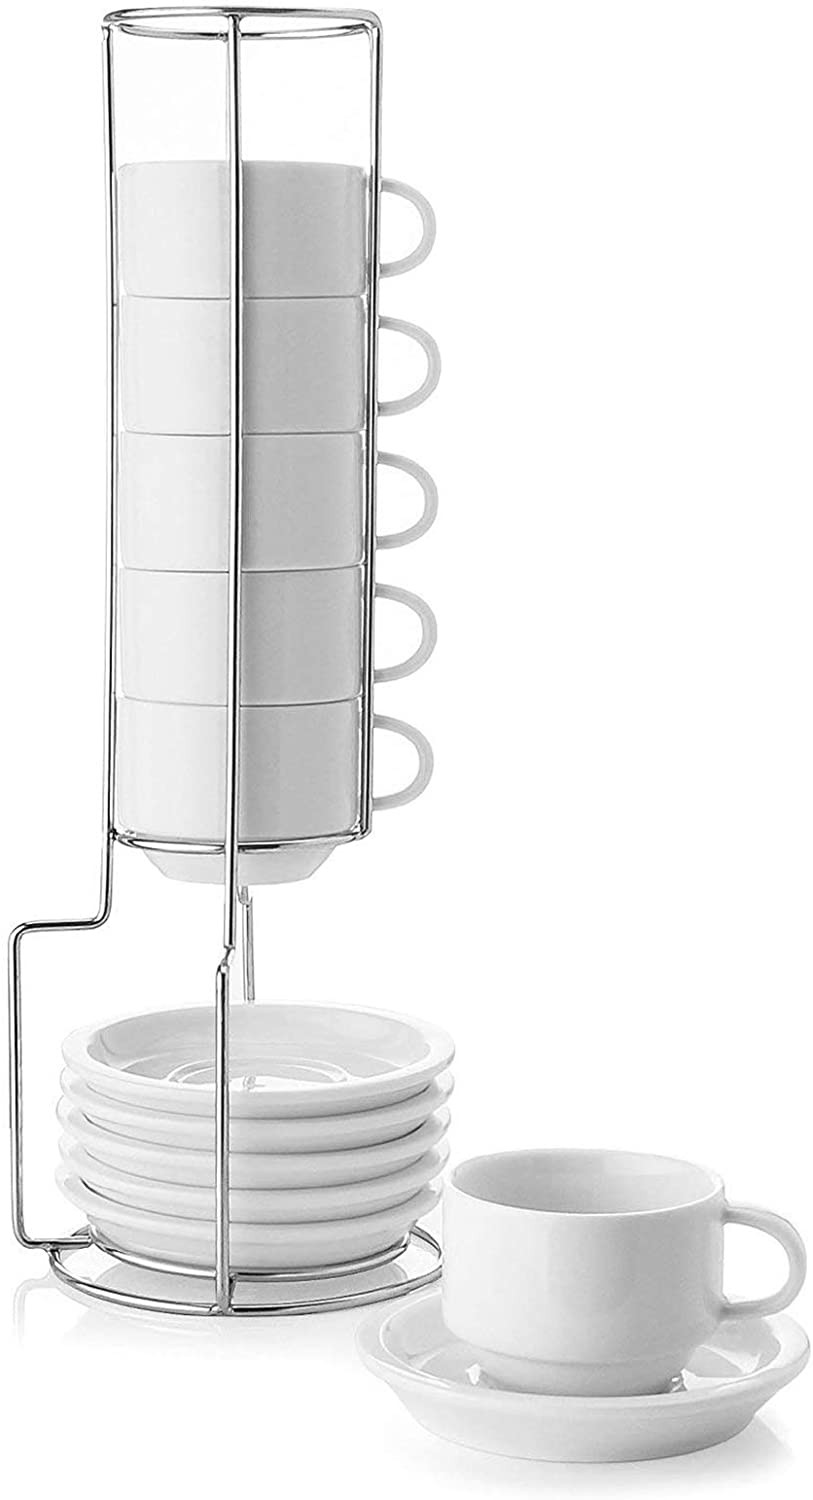 Sweeze porcelain stackable espresso cups with saucers